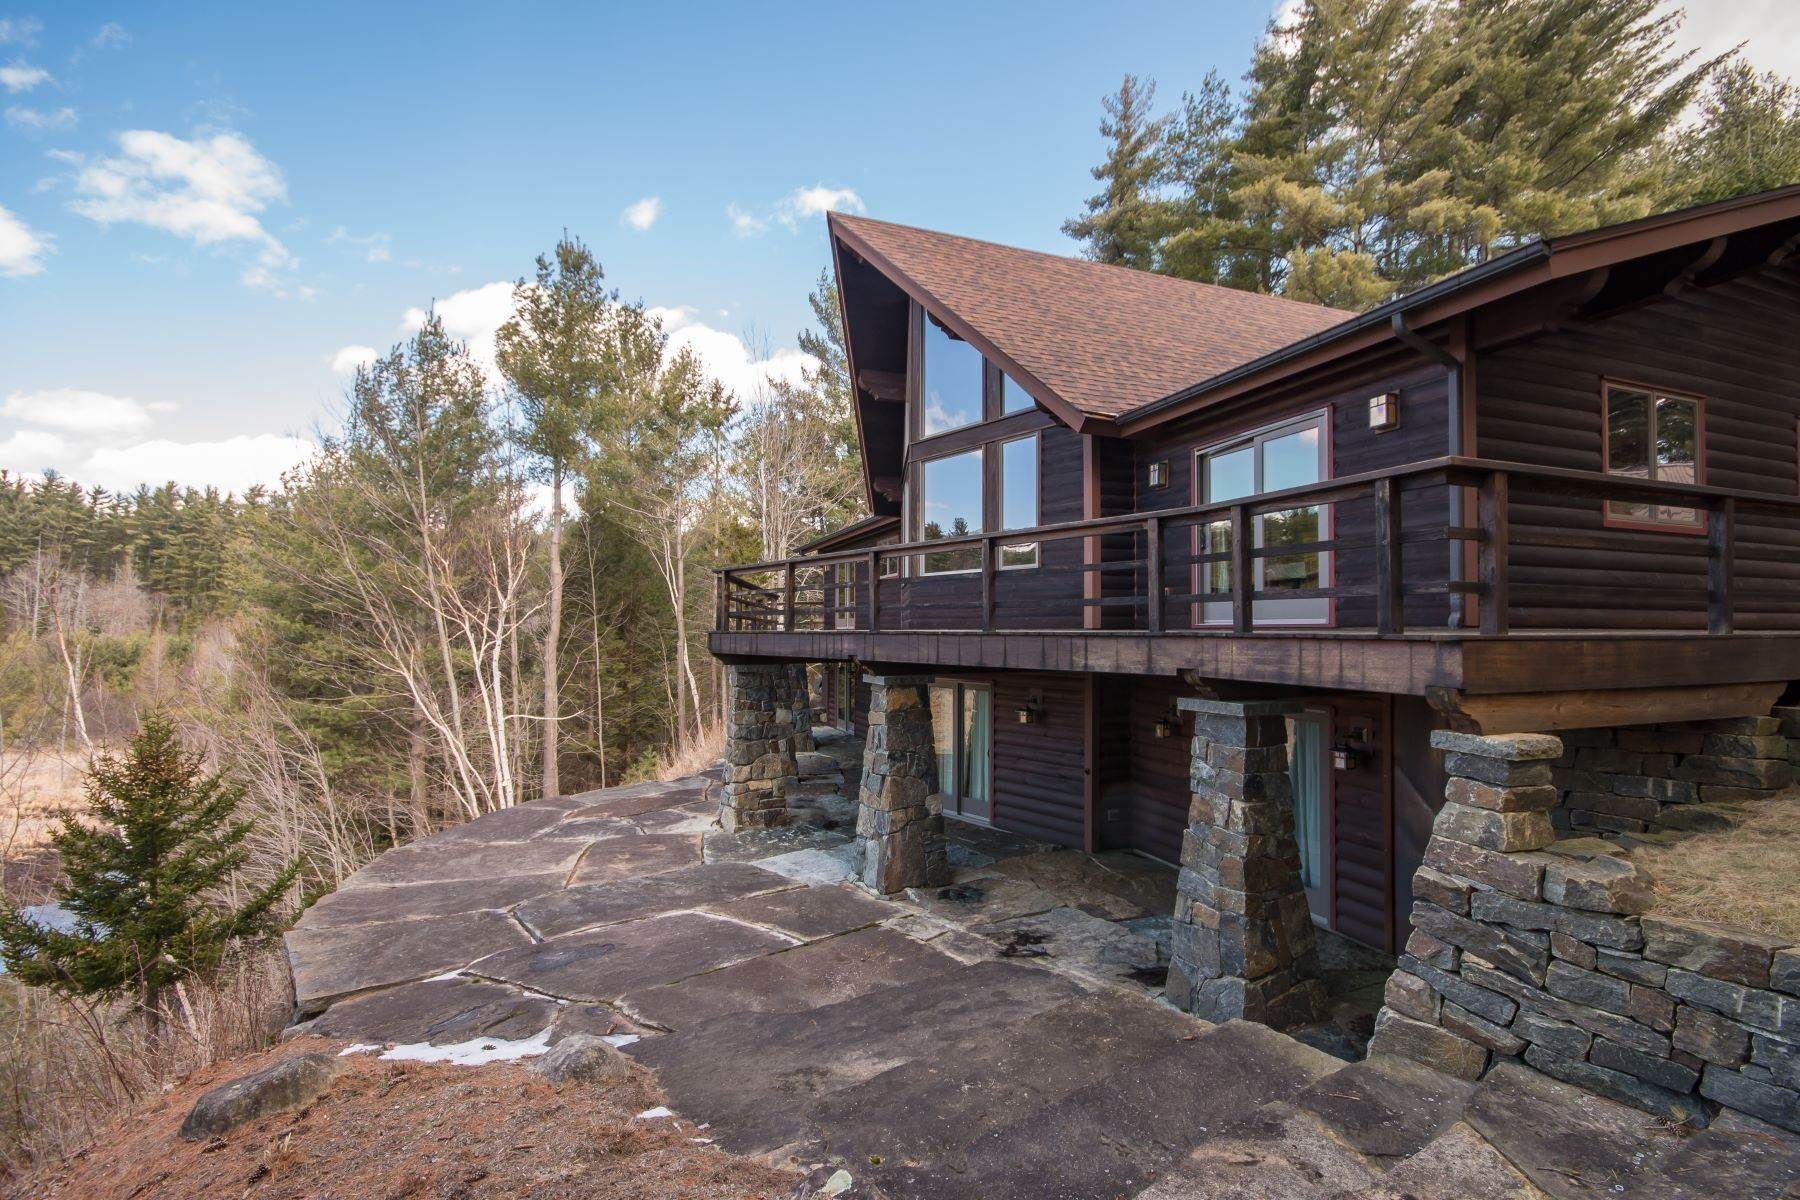 Single Family Homes for Sale at Adirondack Retreat 1749 Haselton Road Wilmington, New York 12997 United States